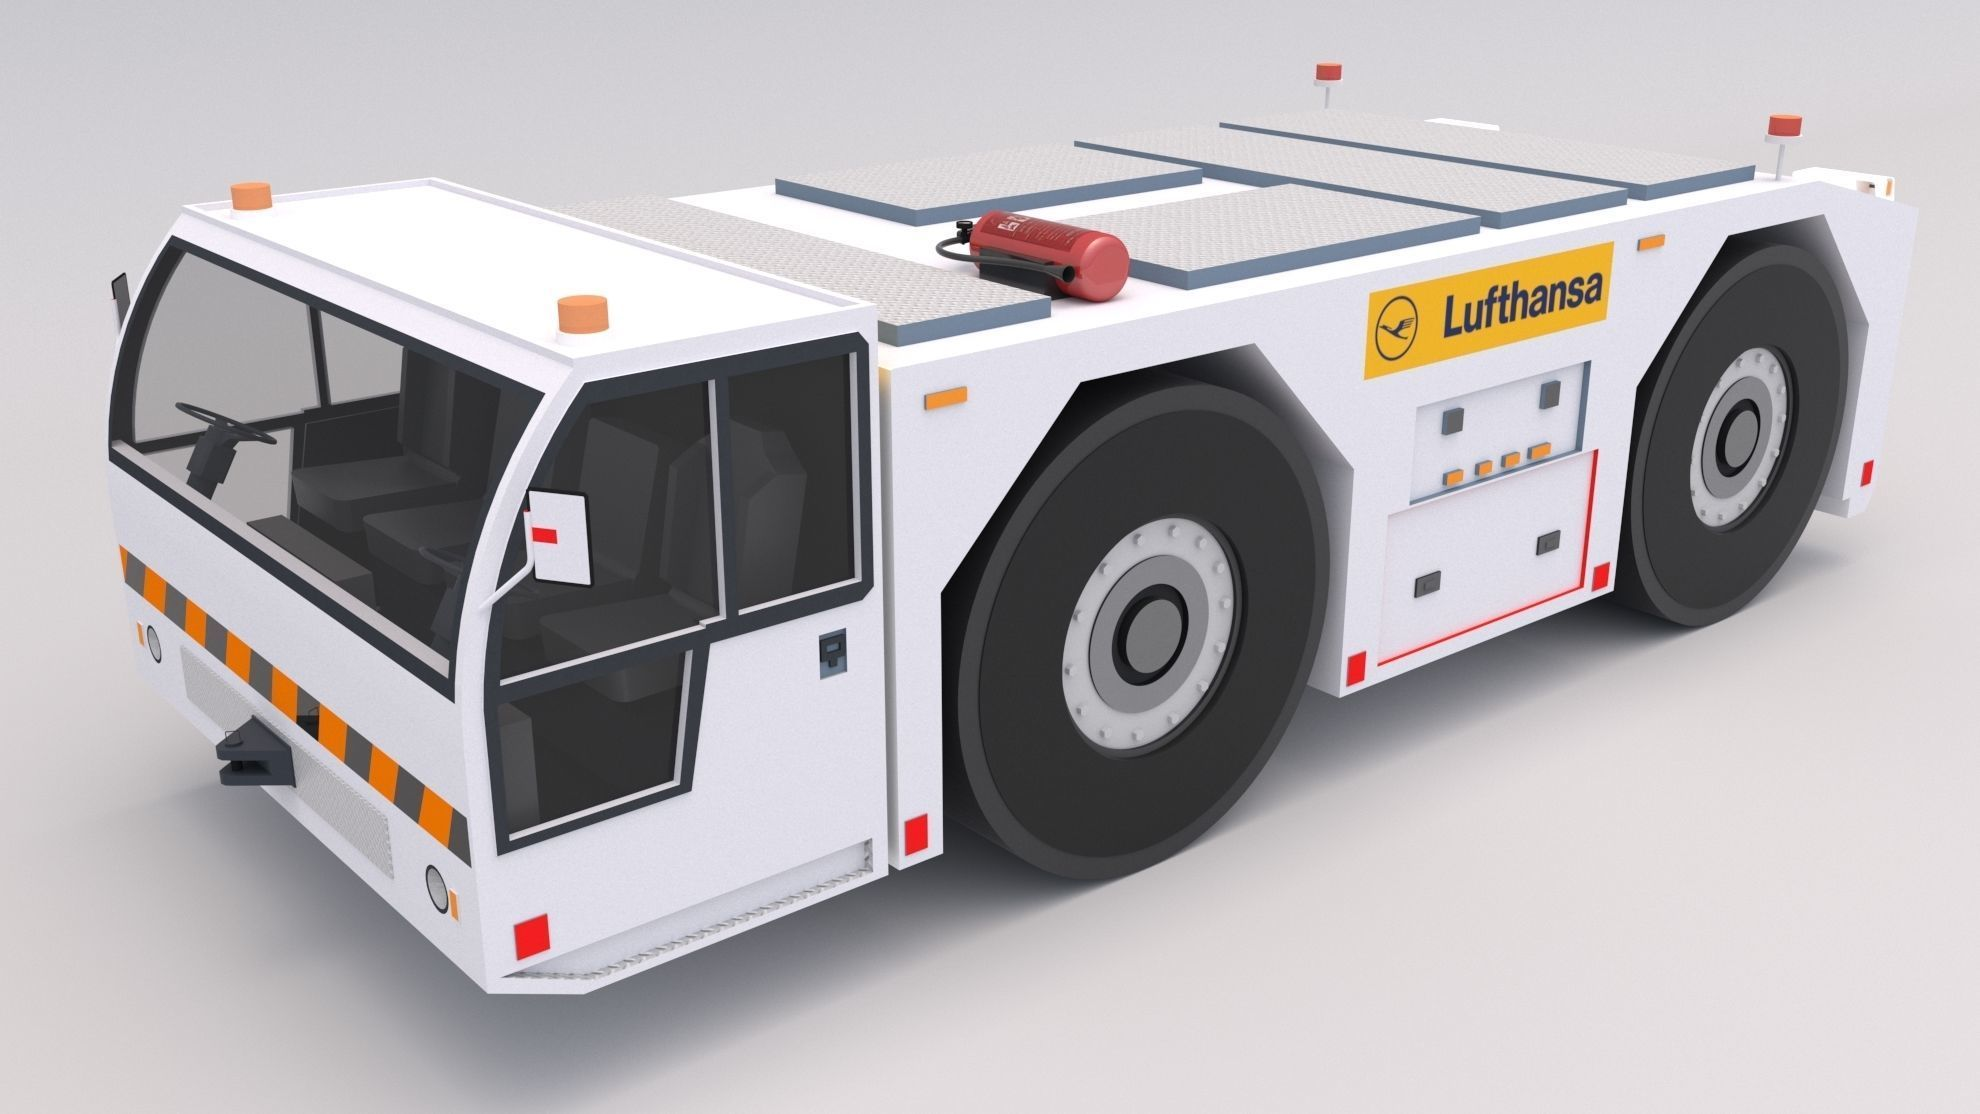 Lufthansa Towing Tractor